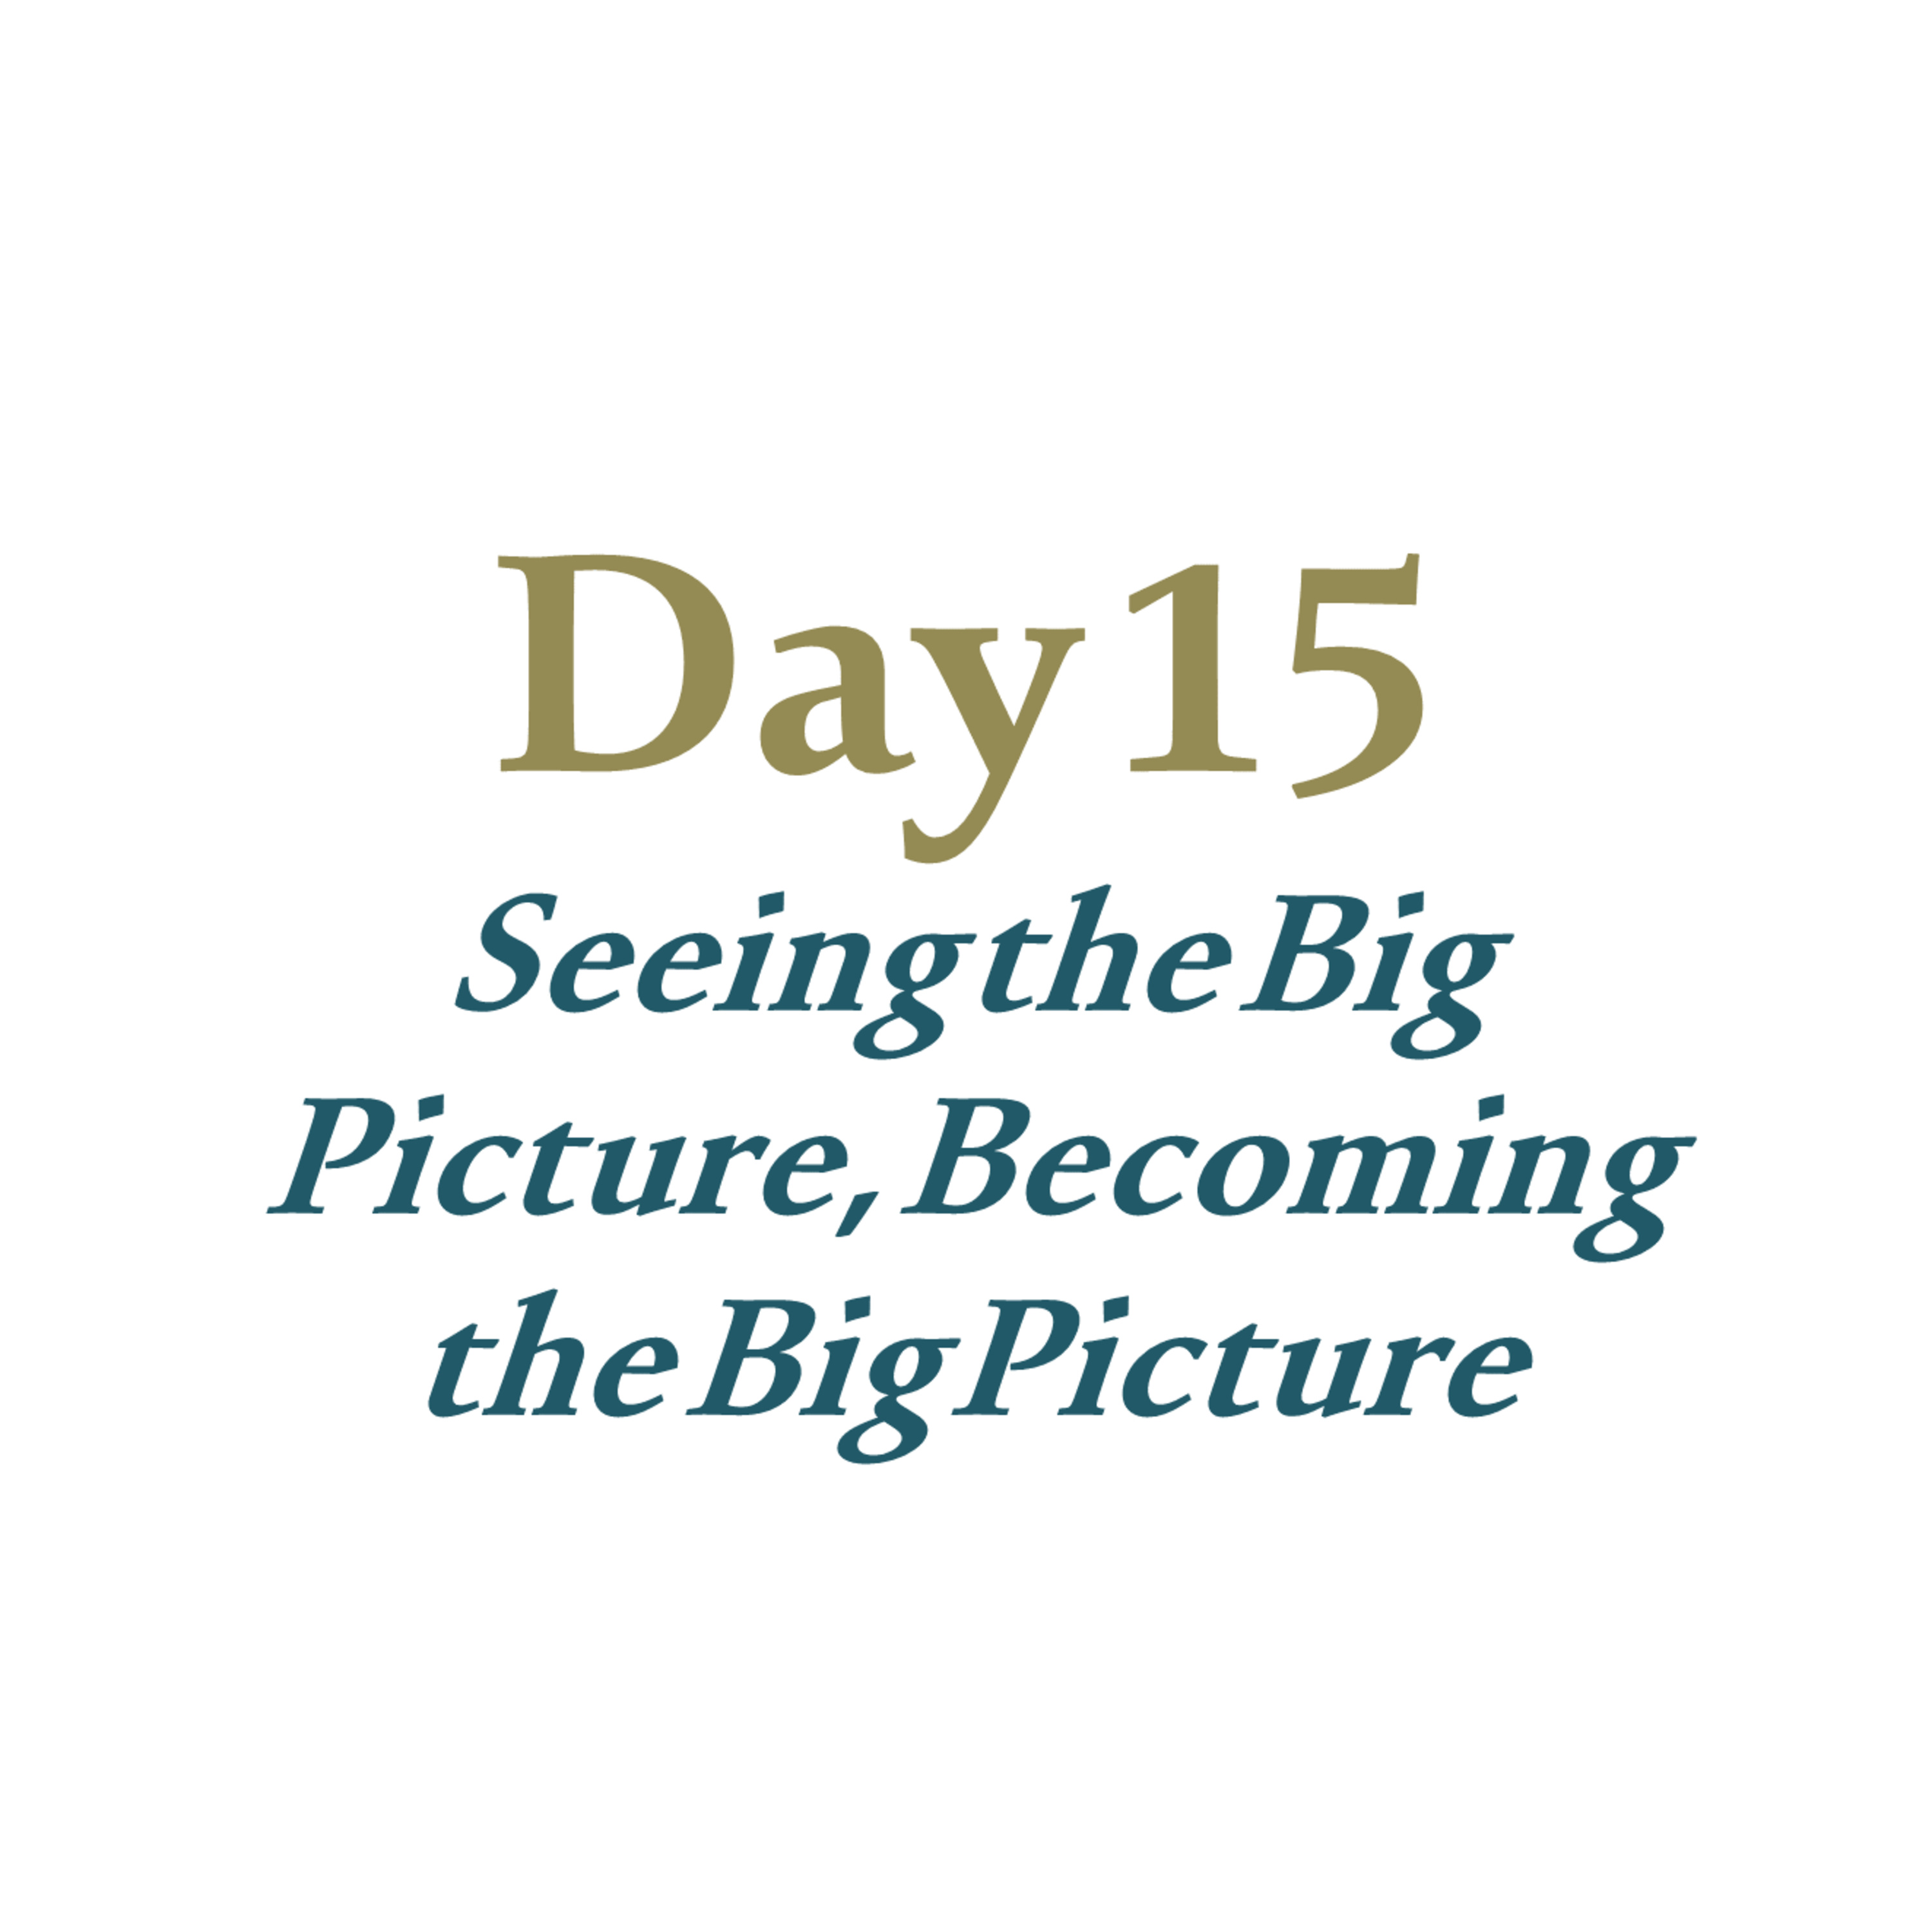 Day 15 - Seeing the Big Picture, Becoming the Big Picture